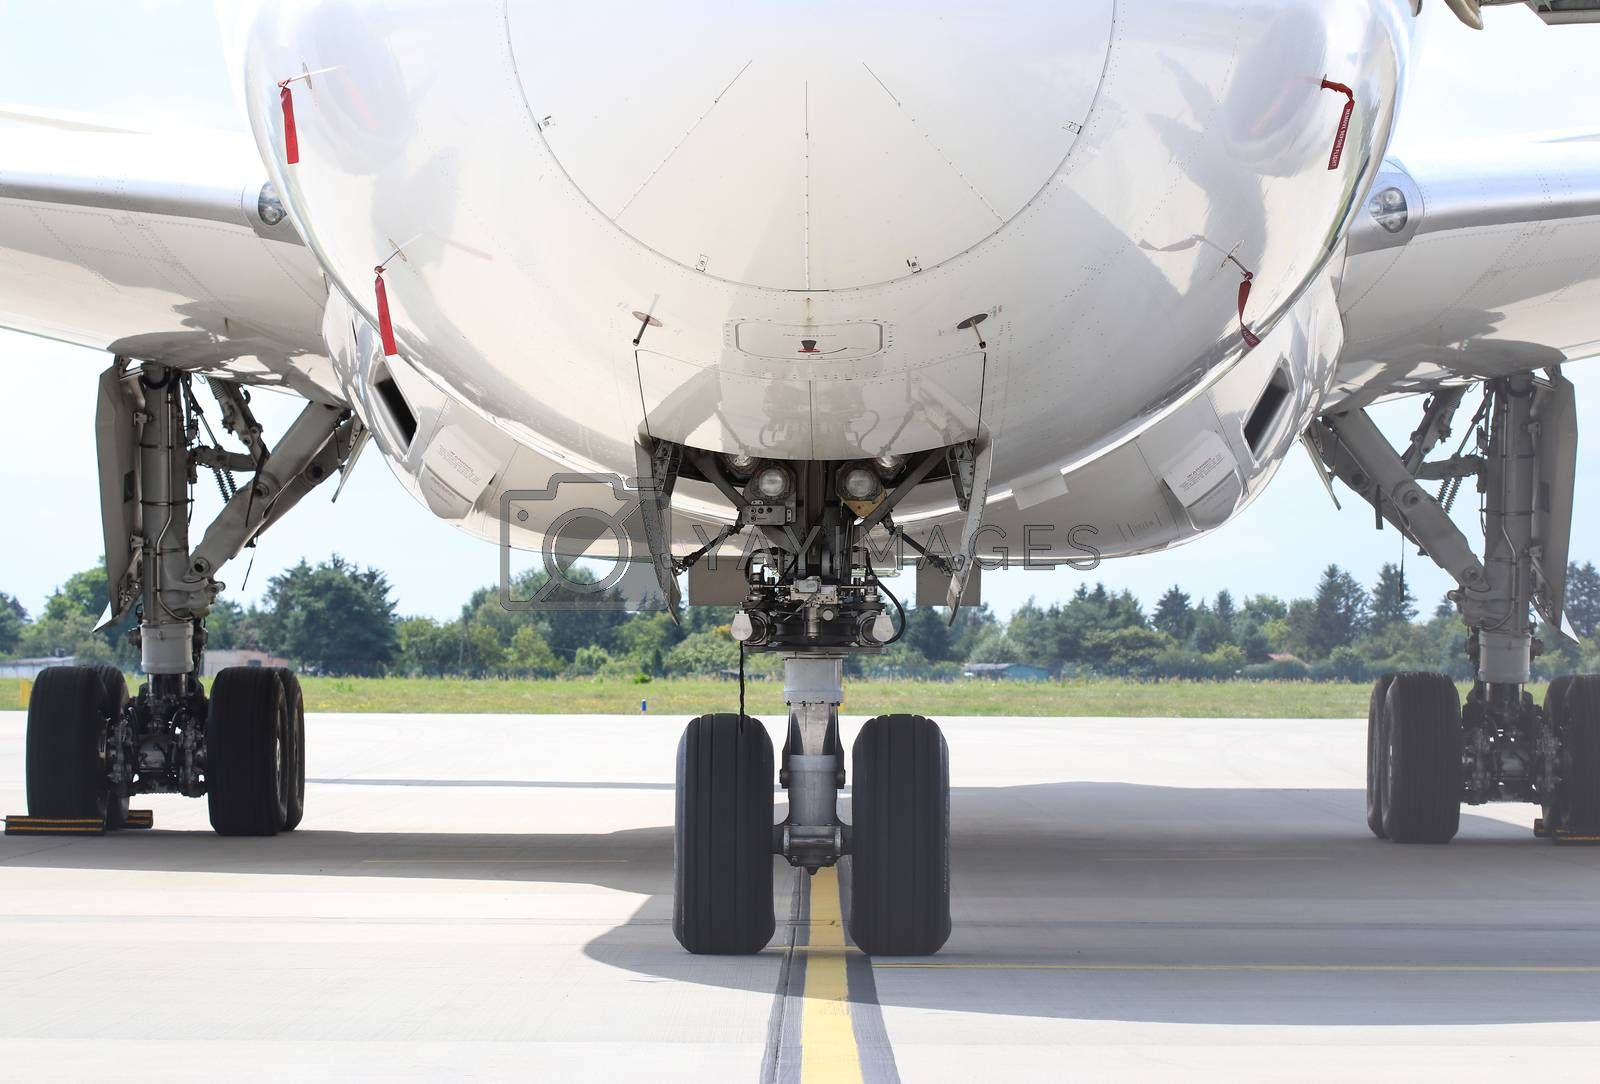 Chassis with headlights of Boeing 787-8 Dreamliner, front view